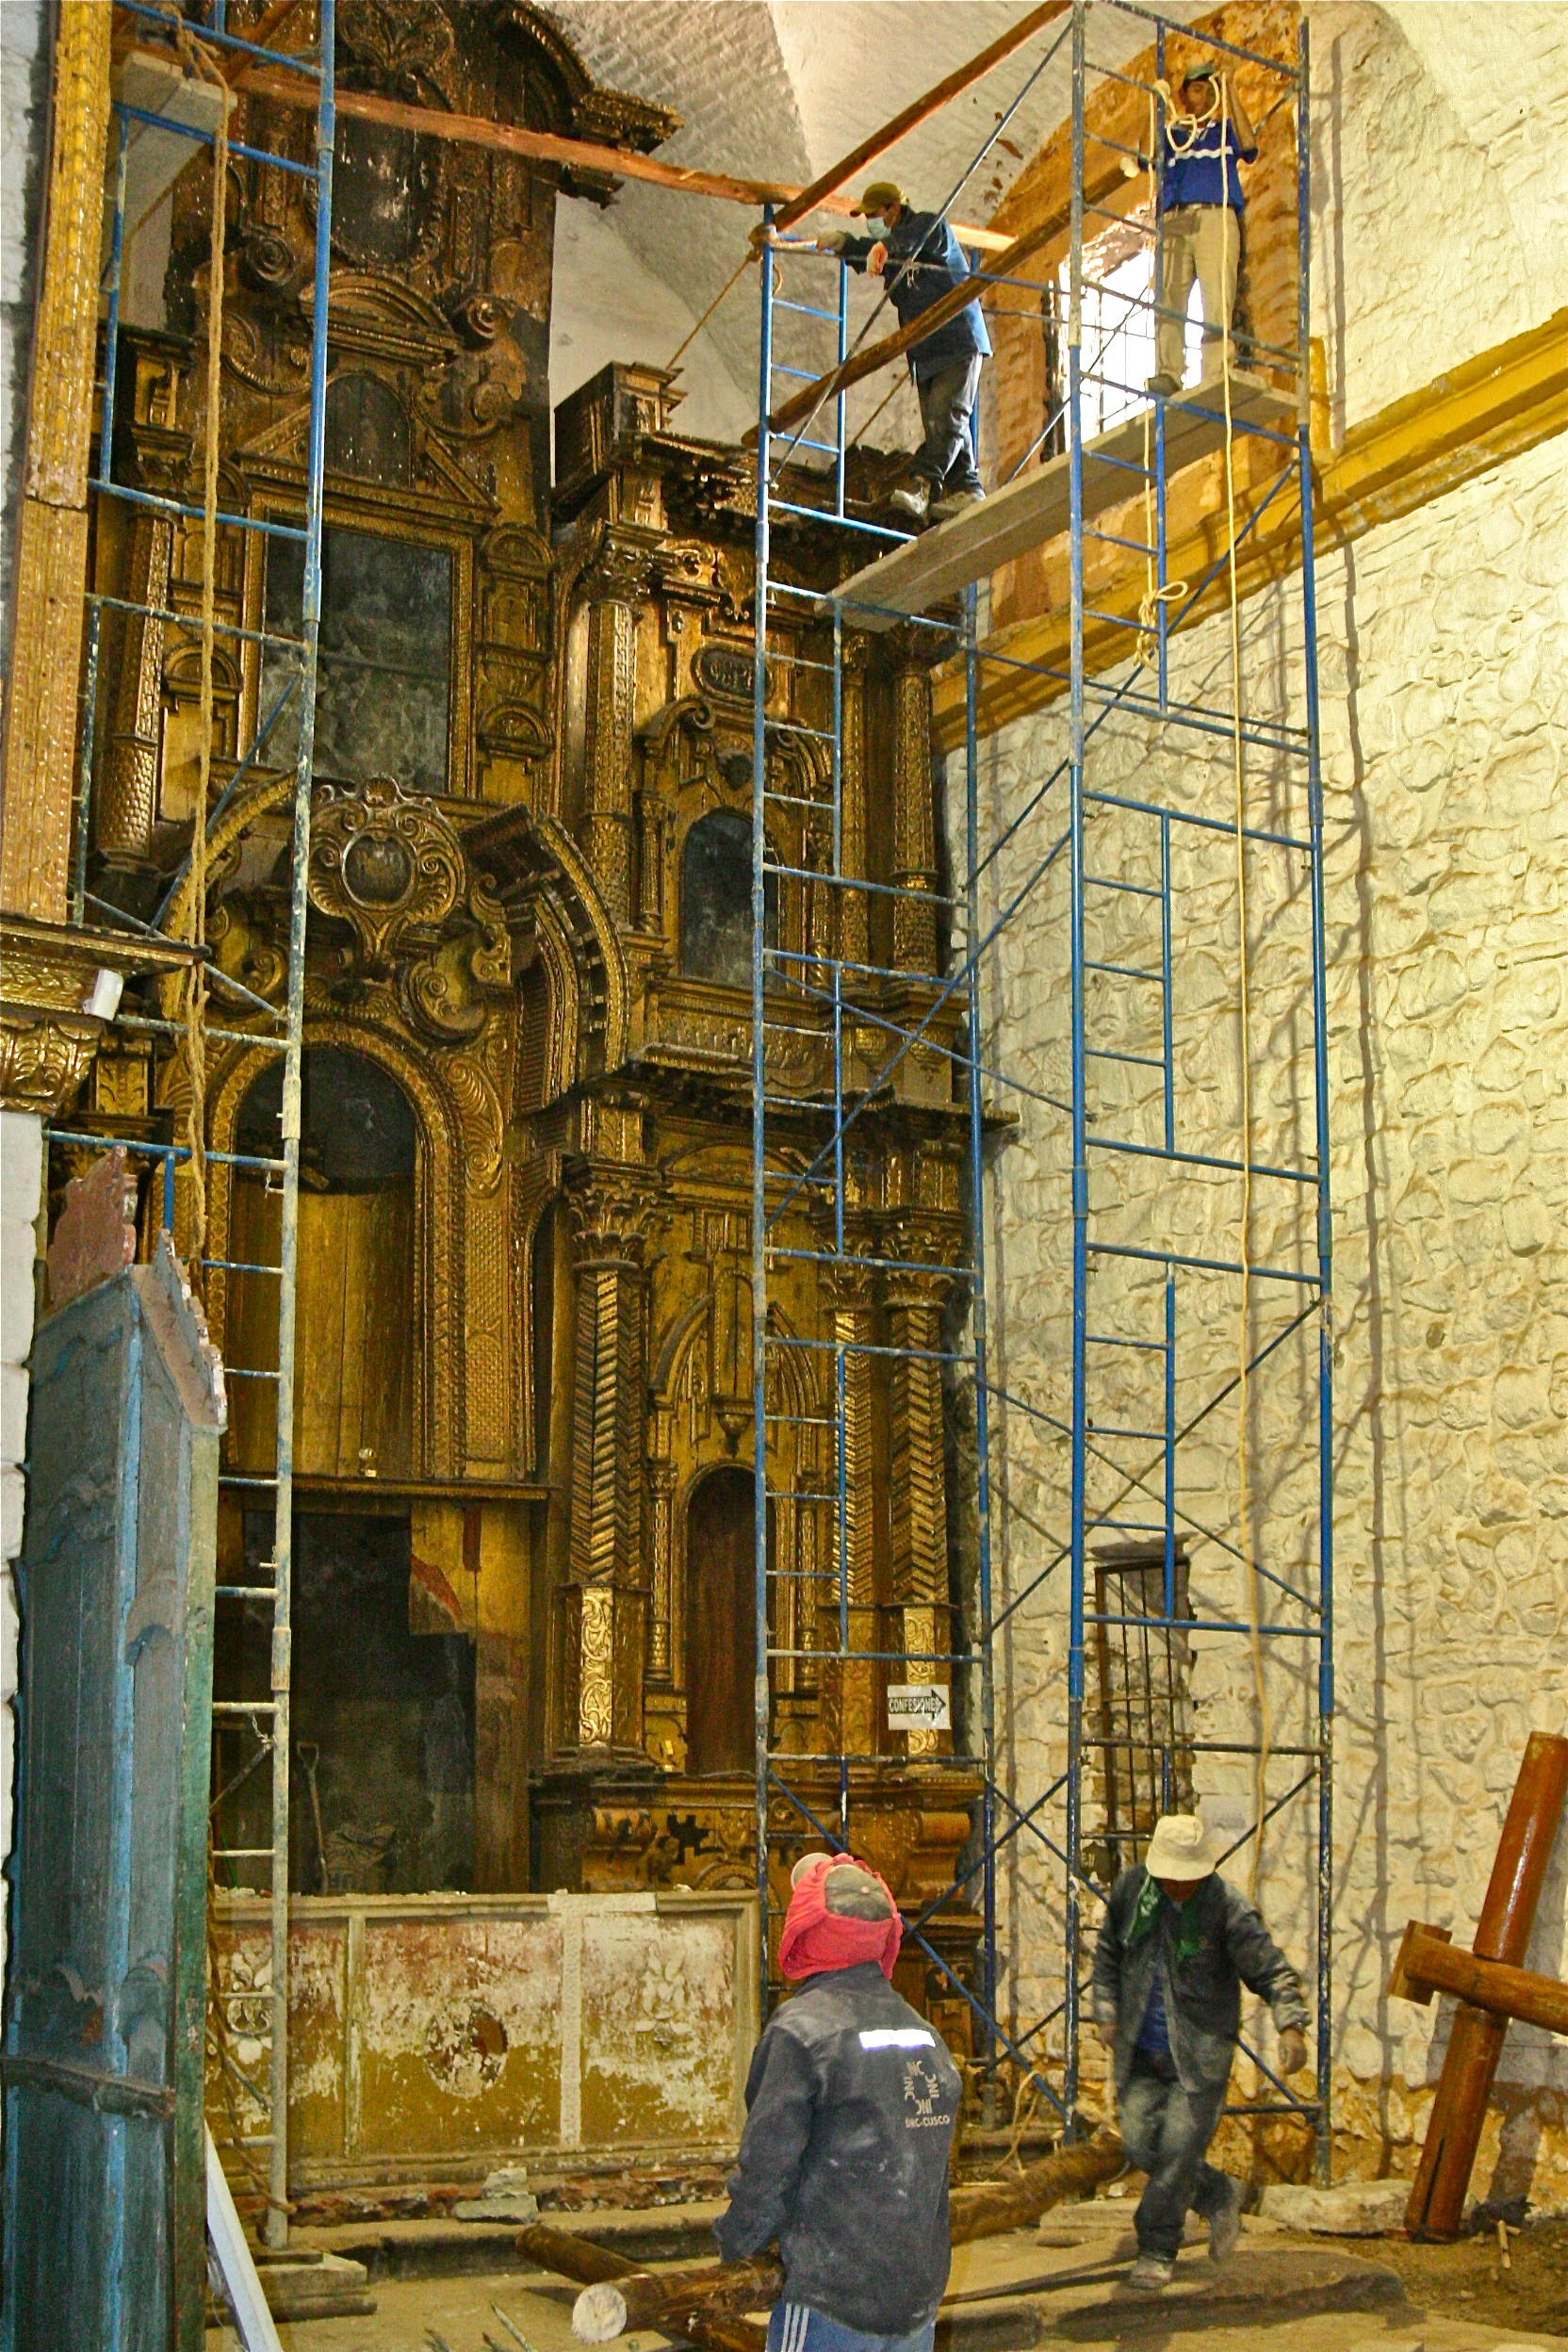 Assembly of scaffolding, used to dismantle altar